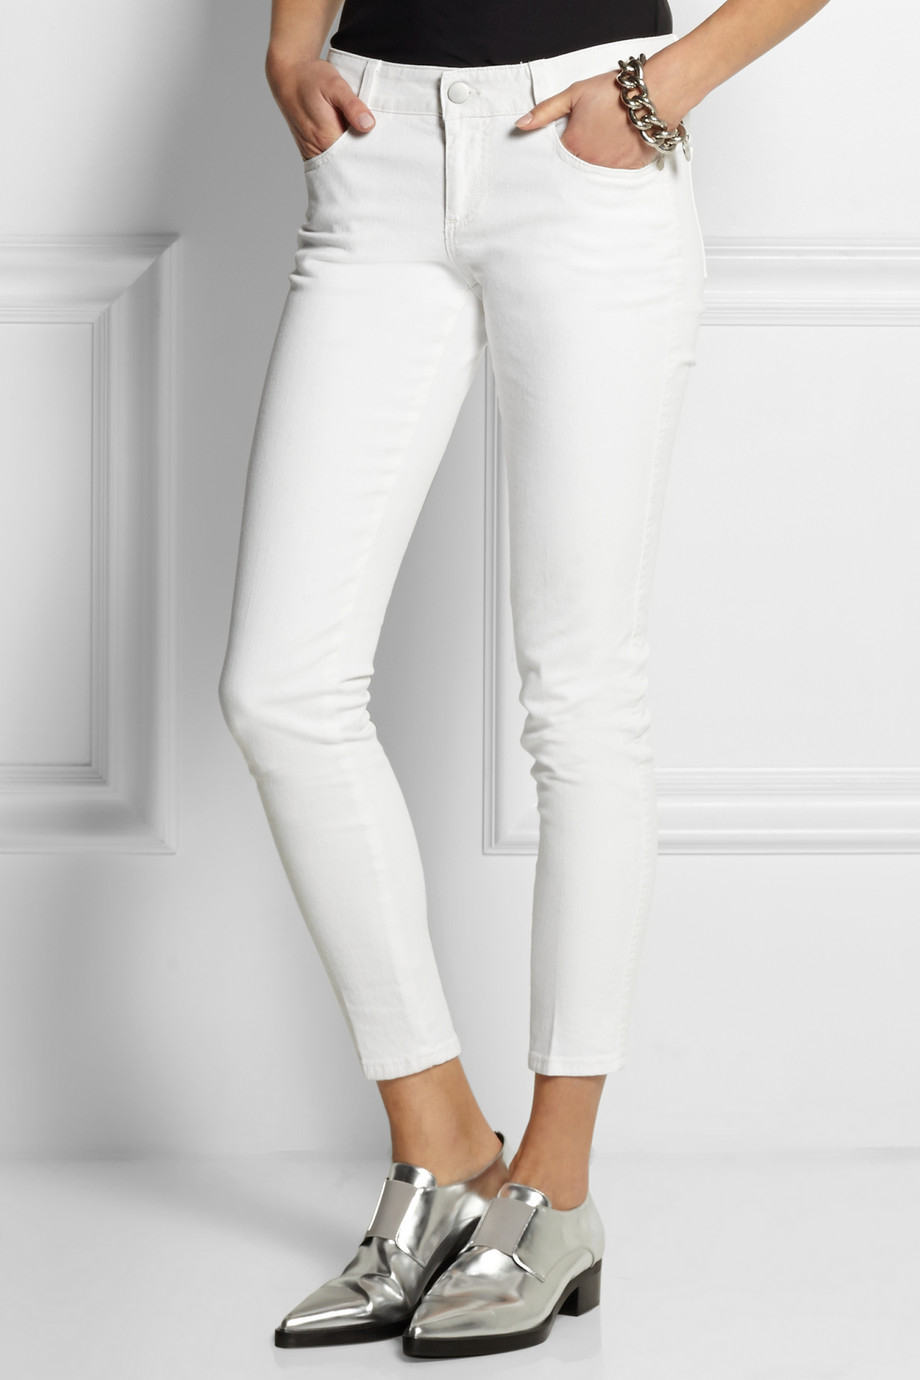 stella mccartney low rise skinny jeans in white lyst. Black Bedroom Furniture Sets. Home Design Ideas